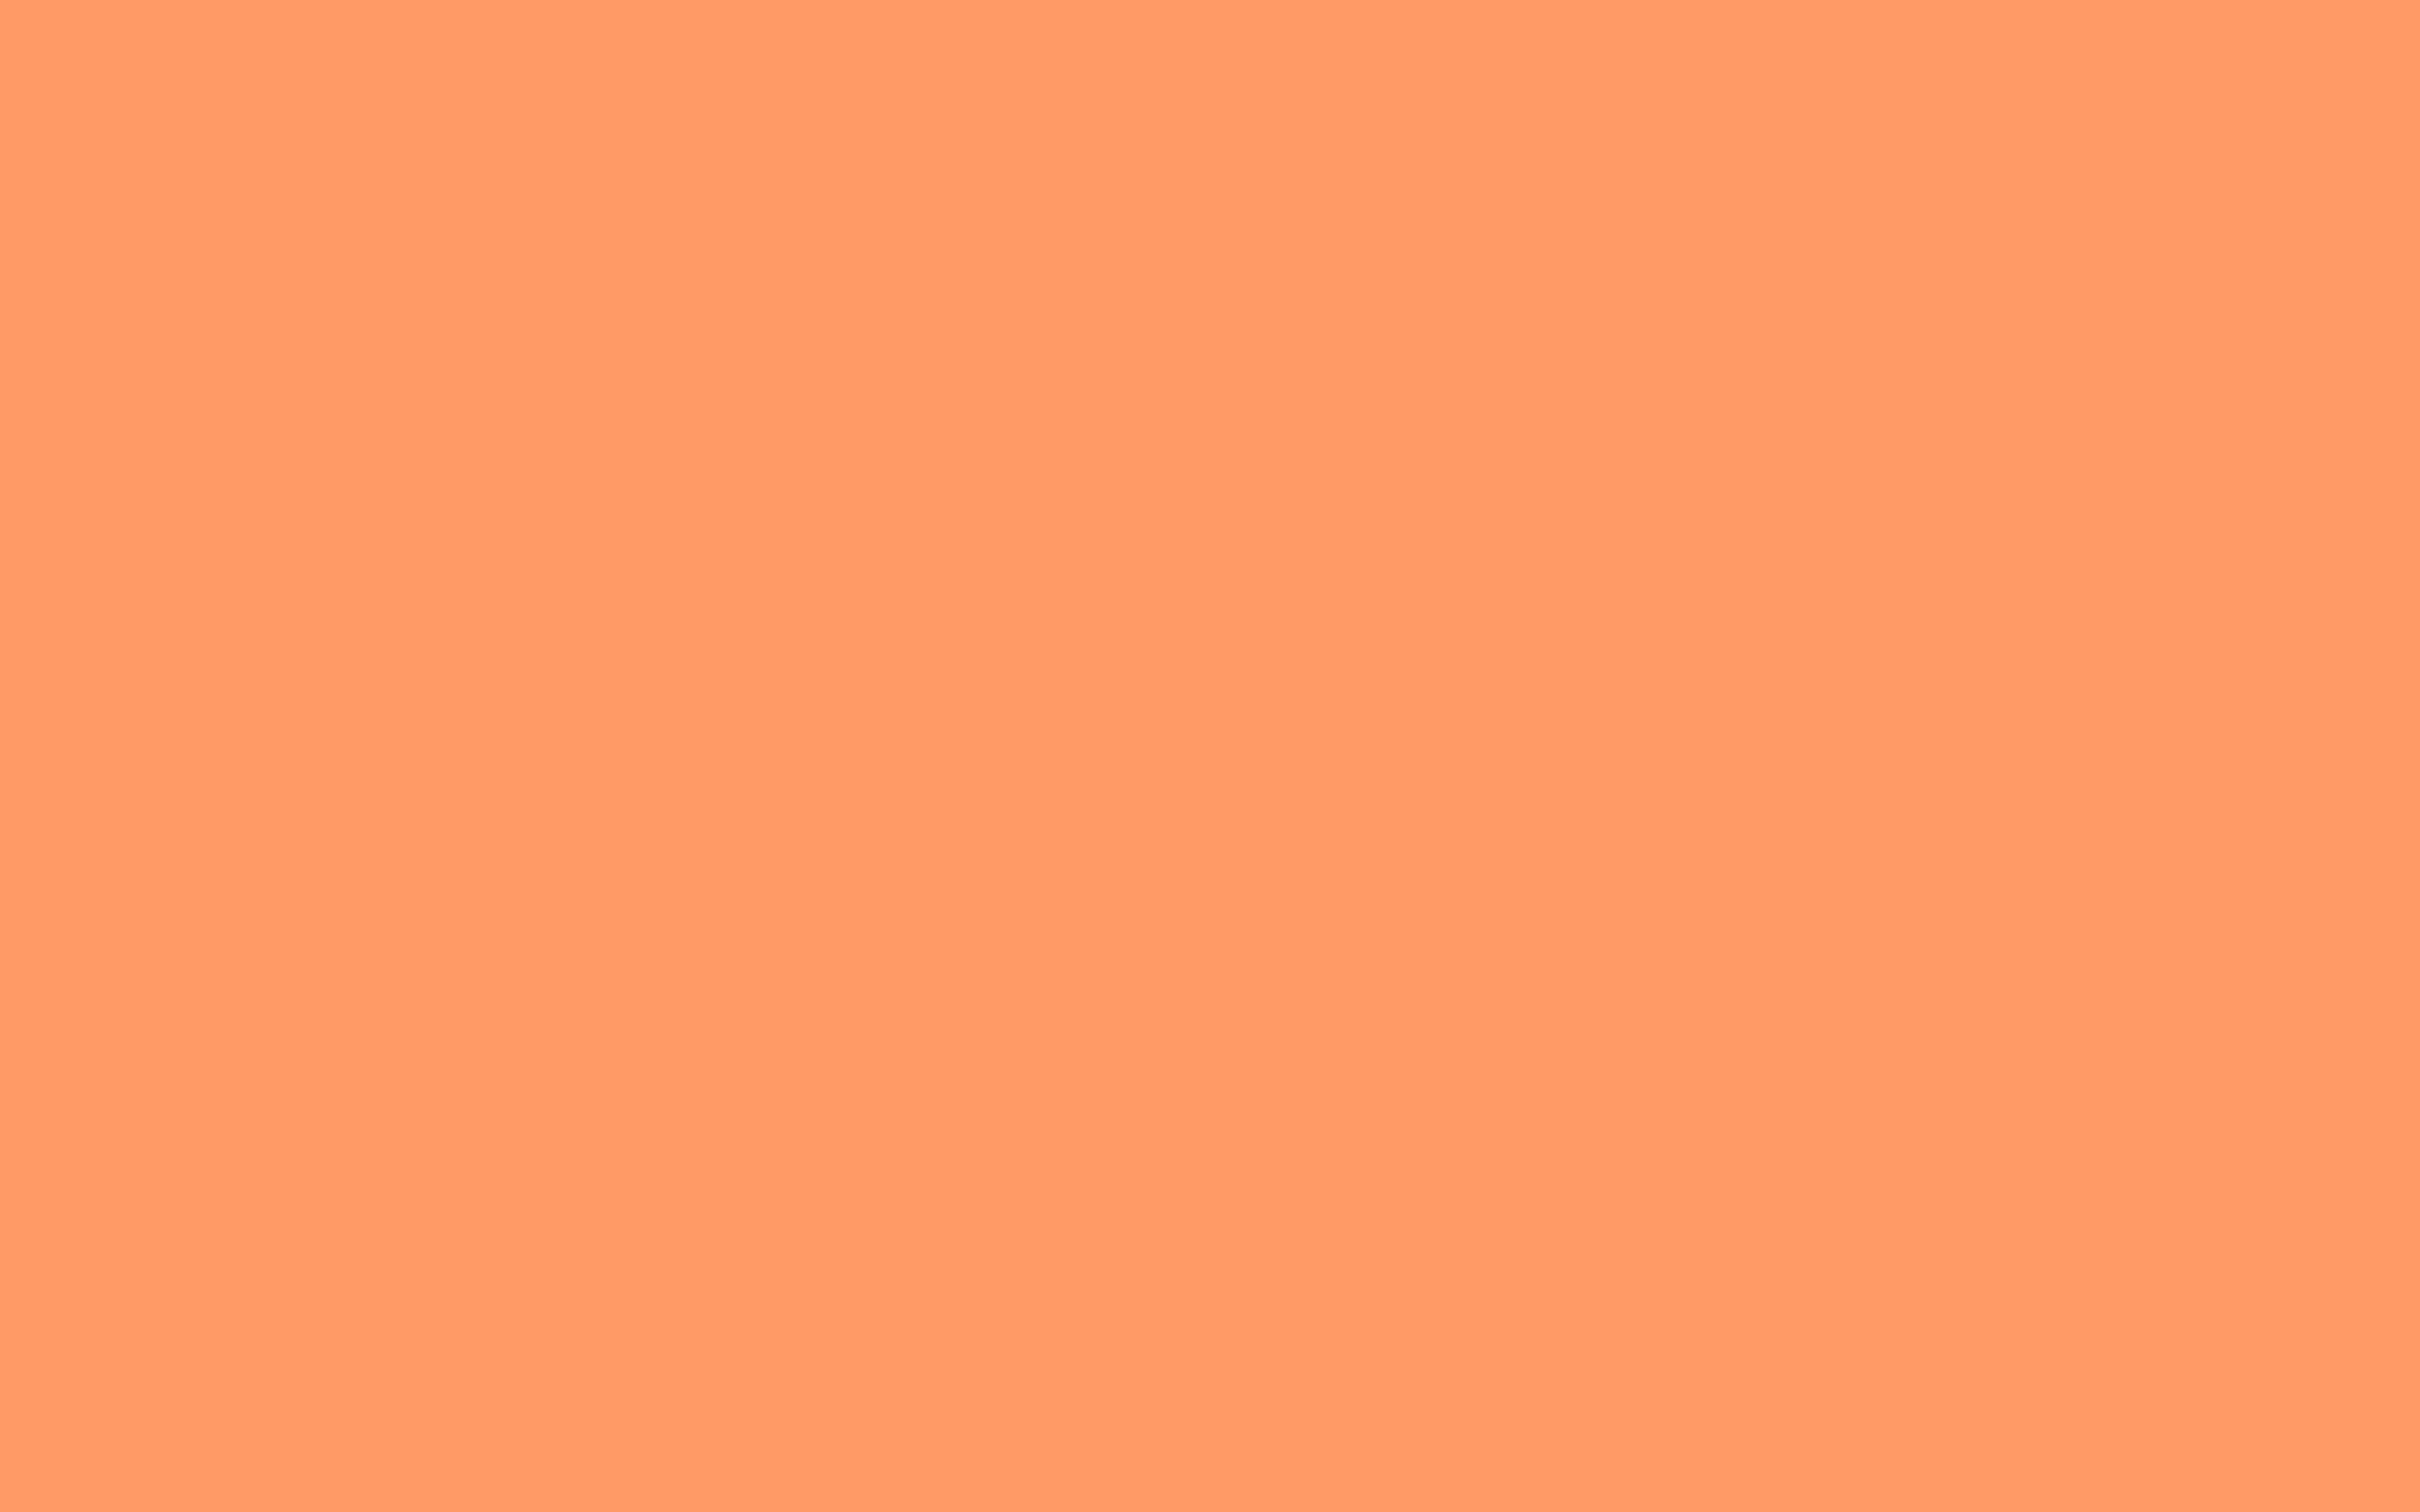 2560x1600 Atomic Tangerine Solid Color Background